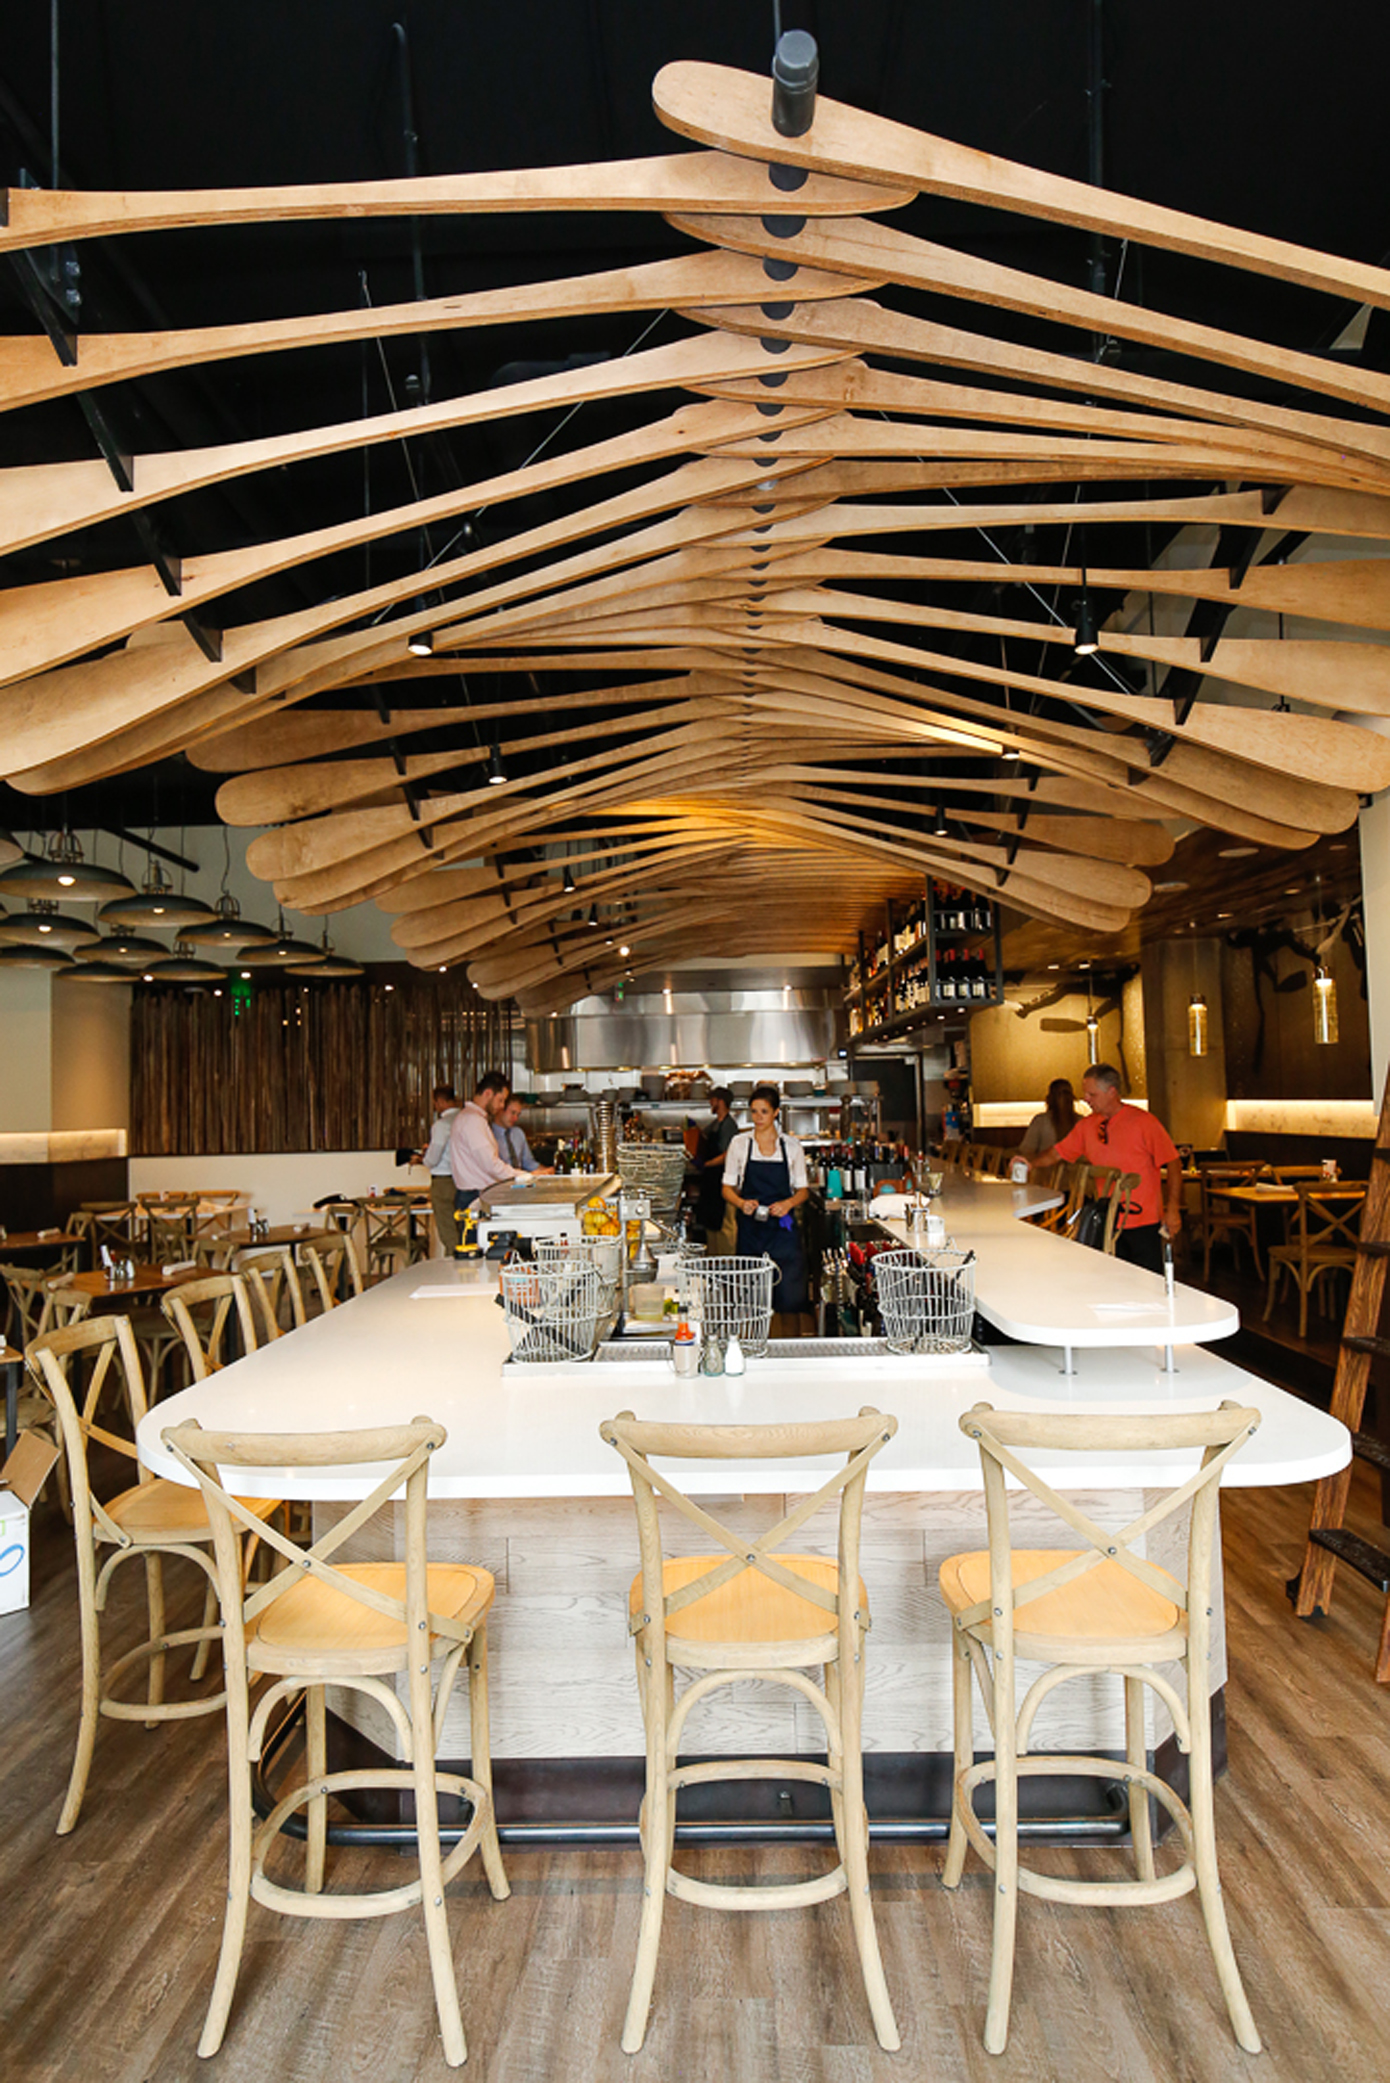 Honored As An Inspiring Restaurant Interior By Food52 The Arch11 Design Of Blue Island Oyster Bar Also Was Named A Top 5 Stone Cold Stunner